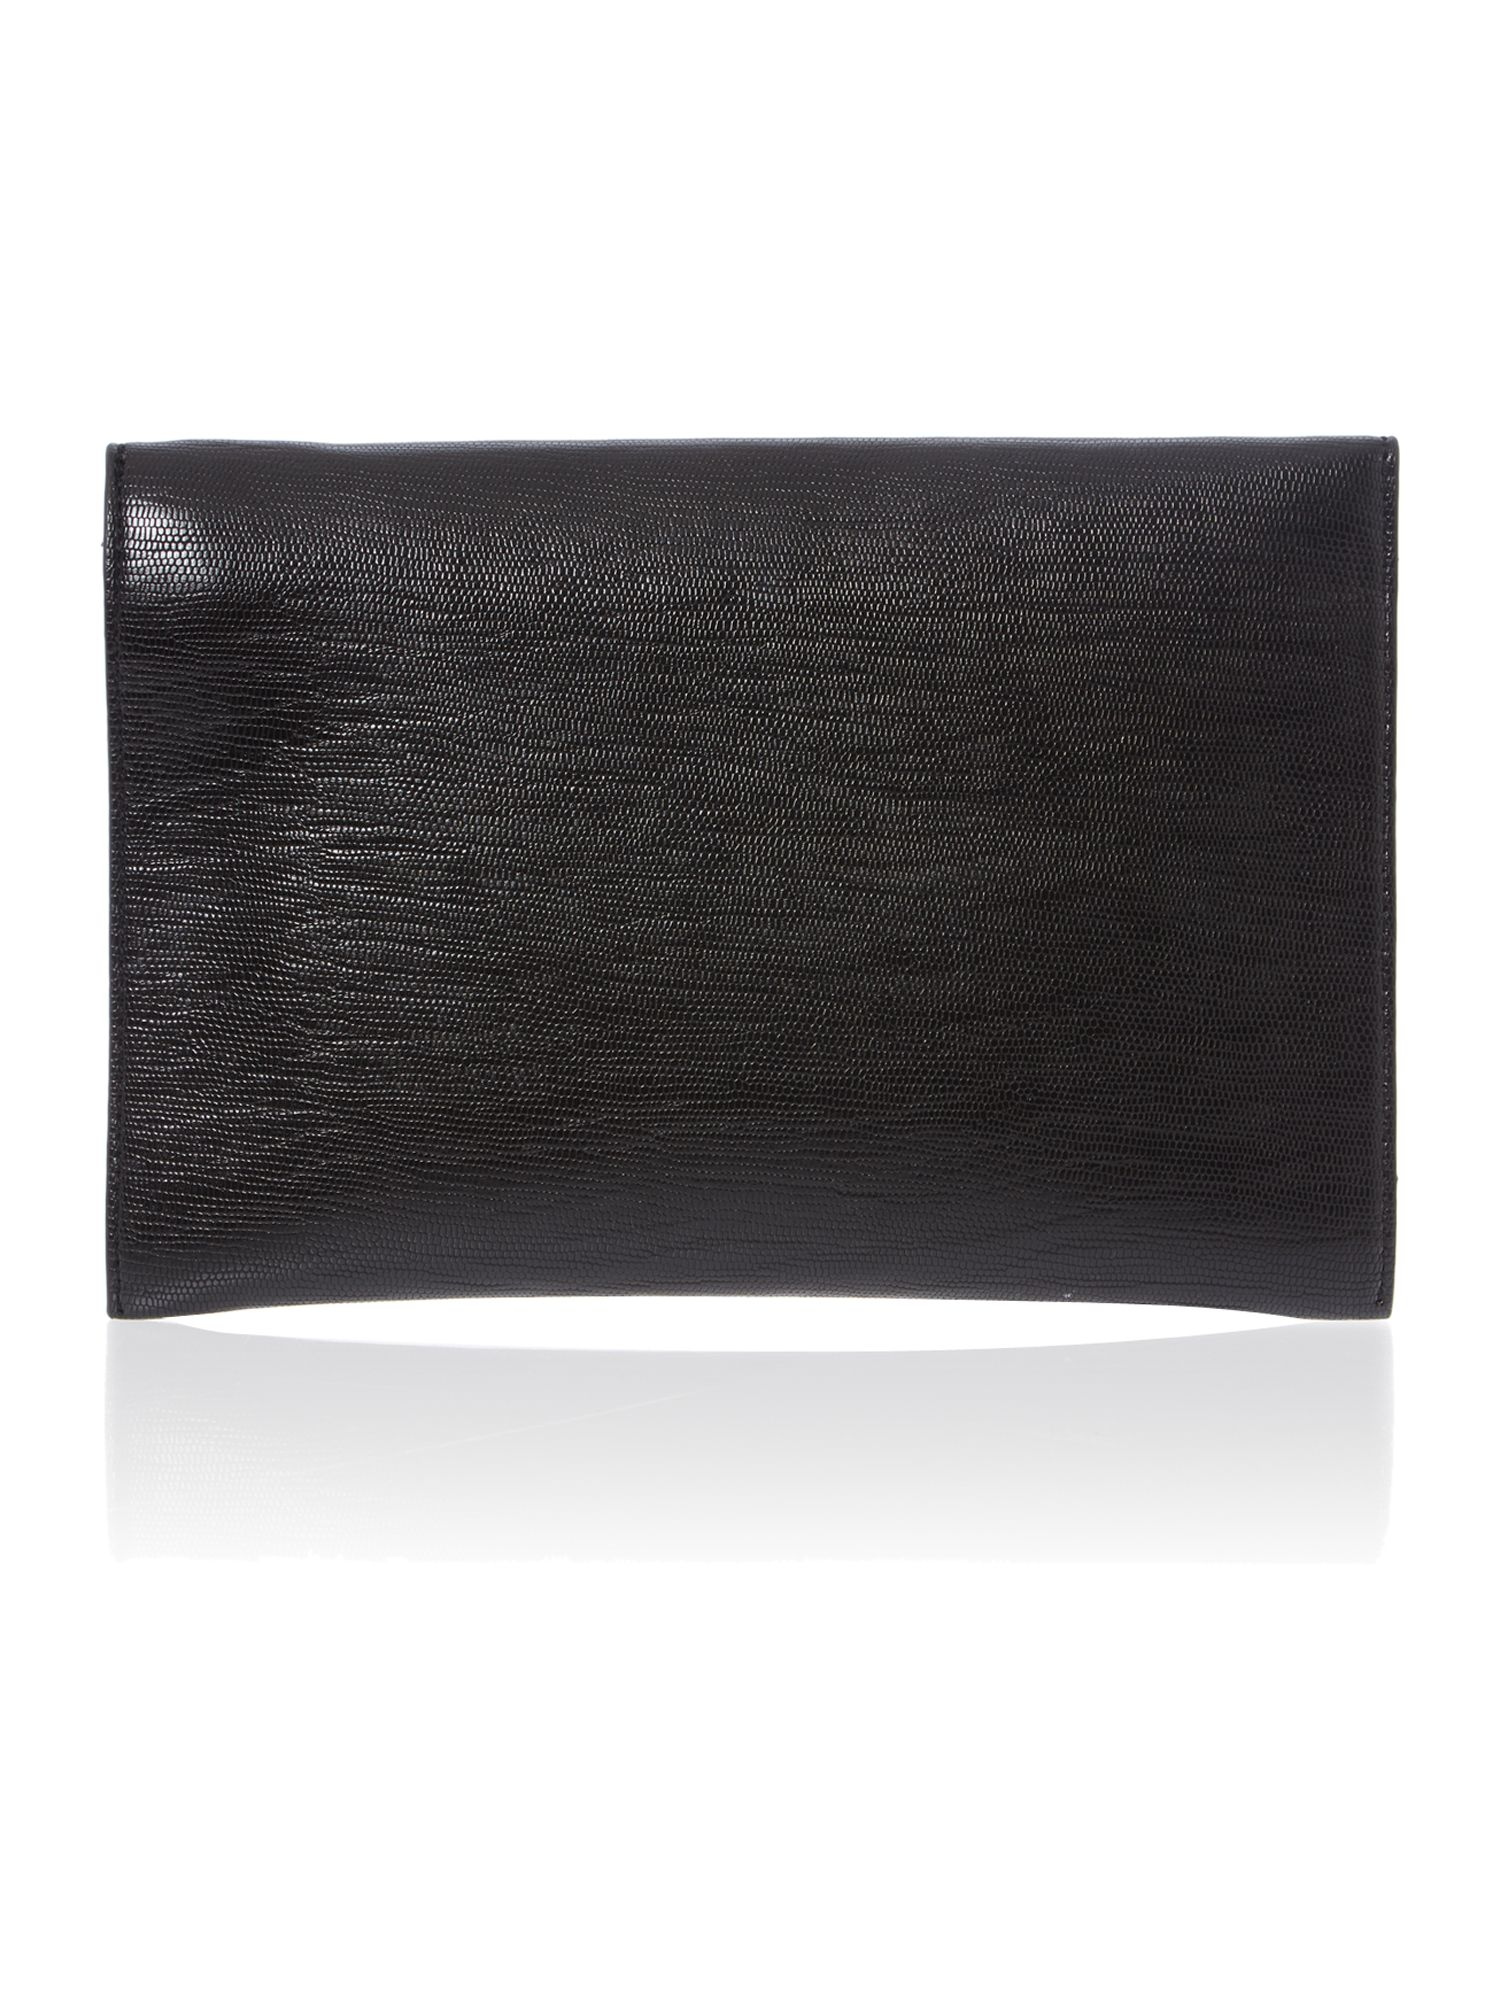 Black envelope clutch bag with chain strap